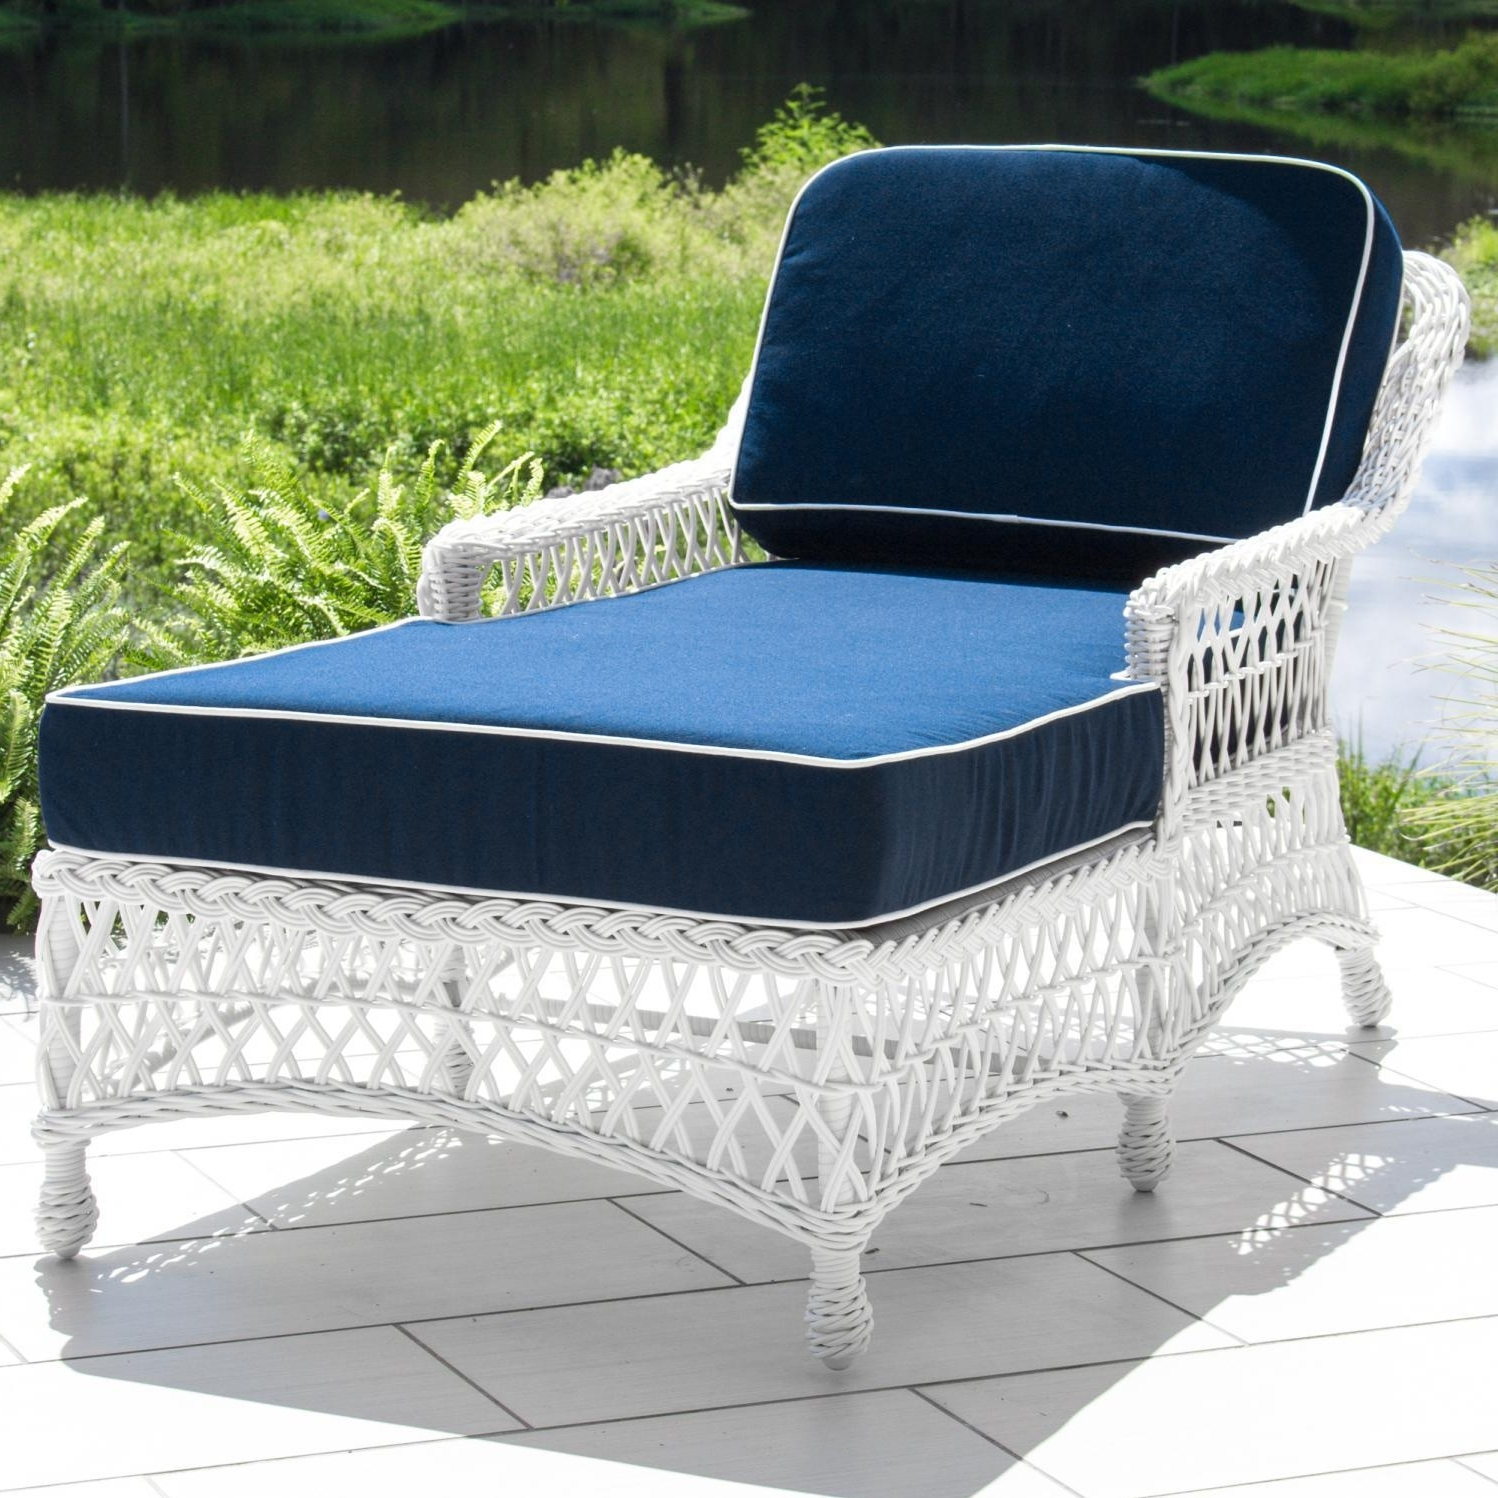 Outdoor : Affordable Chaise Lounges Chaise Lounge Patio Furniture In Fashionable Wicker Chaises (View 5 of 15)